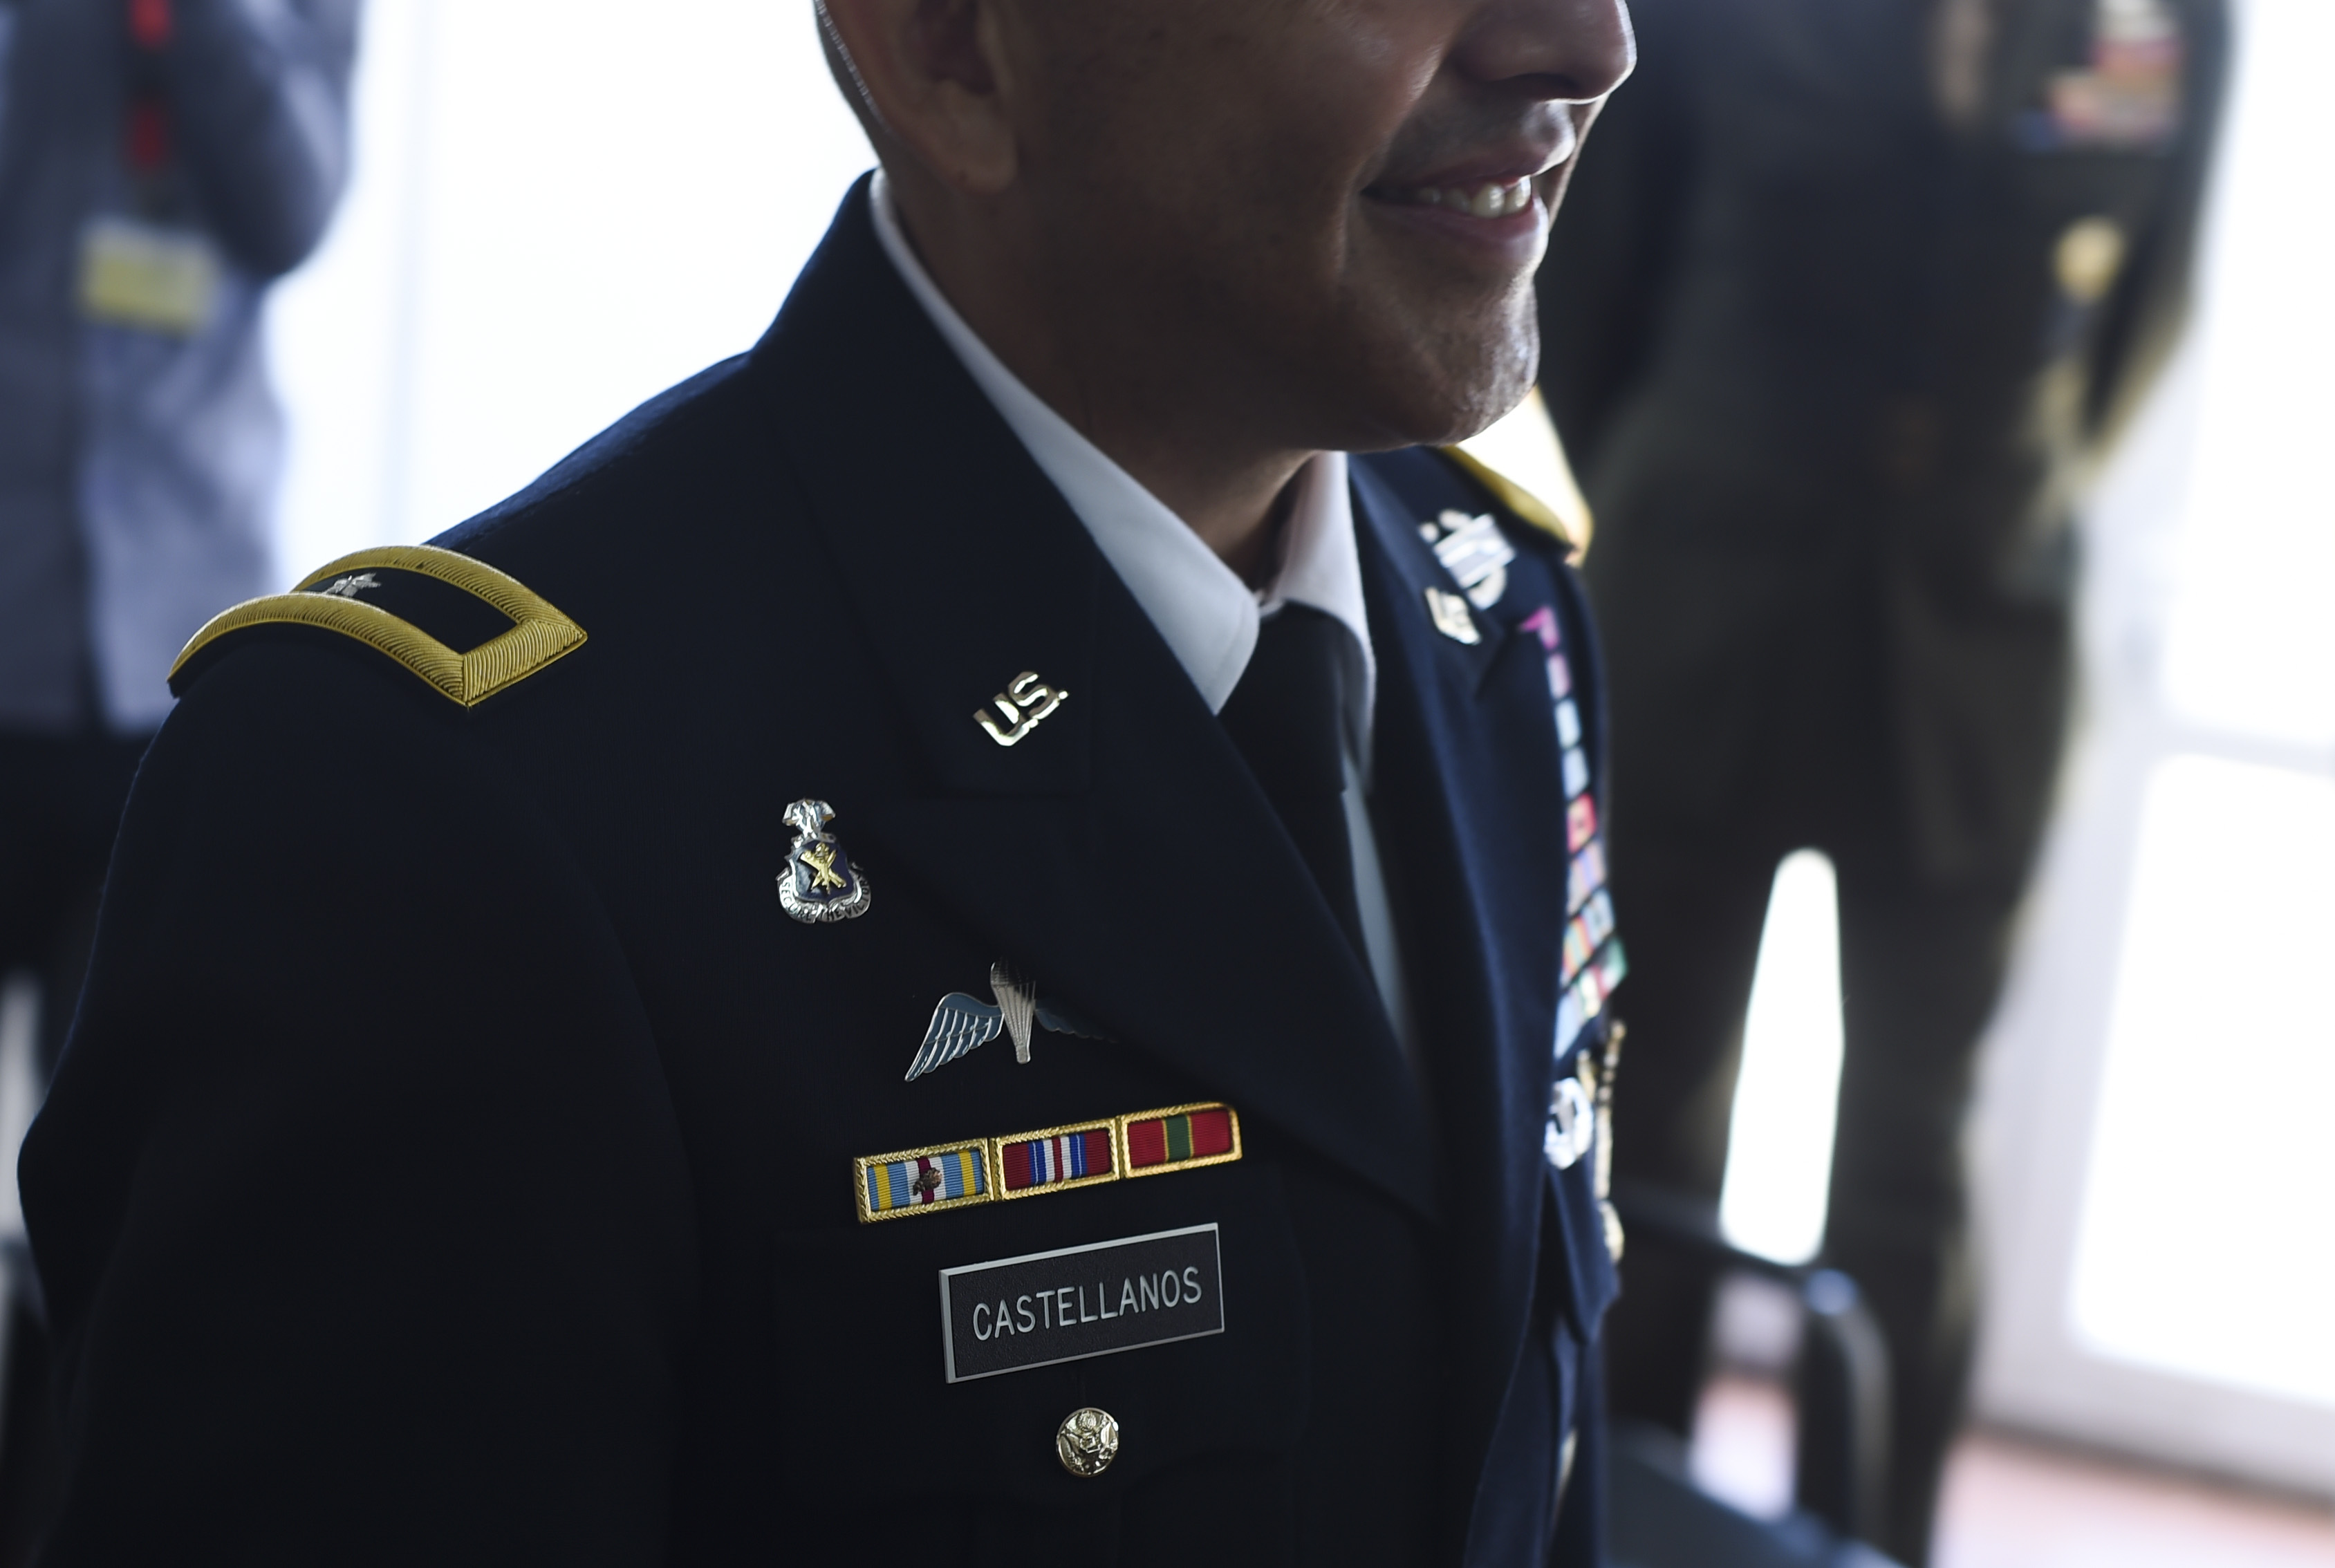 U.S. Army Brig. Gen. Miguel Castellanos, Combined Joint Task Force-Horn of Africa deputy commanding general in Somalia and Mogadishu Coordination Cell director, smiles during a promotion ceremony at MCC, June 4, 2017. Prior to this assignment, Castellanos was the deputy director for Plans and Policy for U.S. Africa Command.(U.S. Air Force photo by Staff Sgt. Eboni Prince)